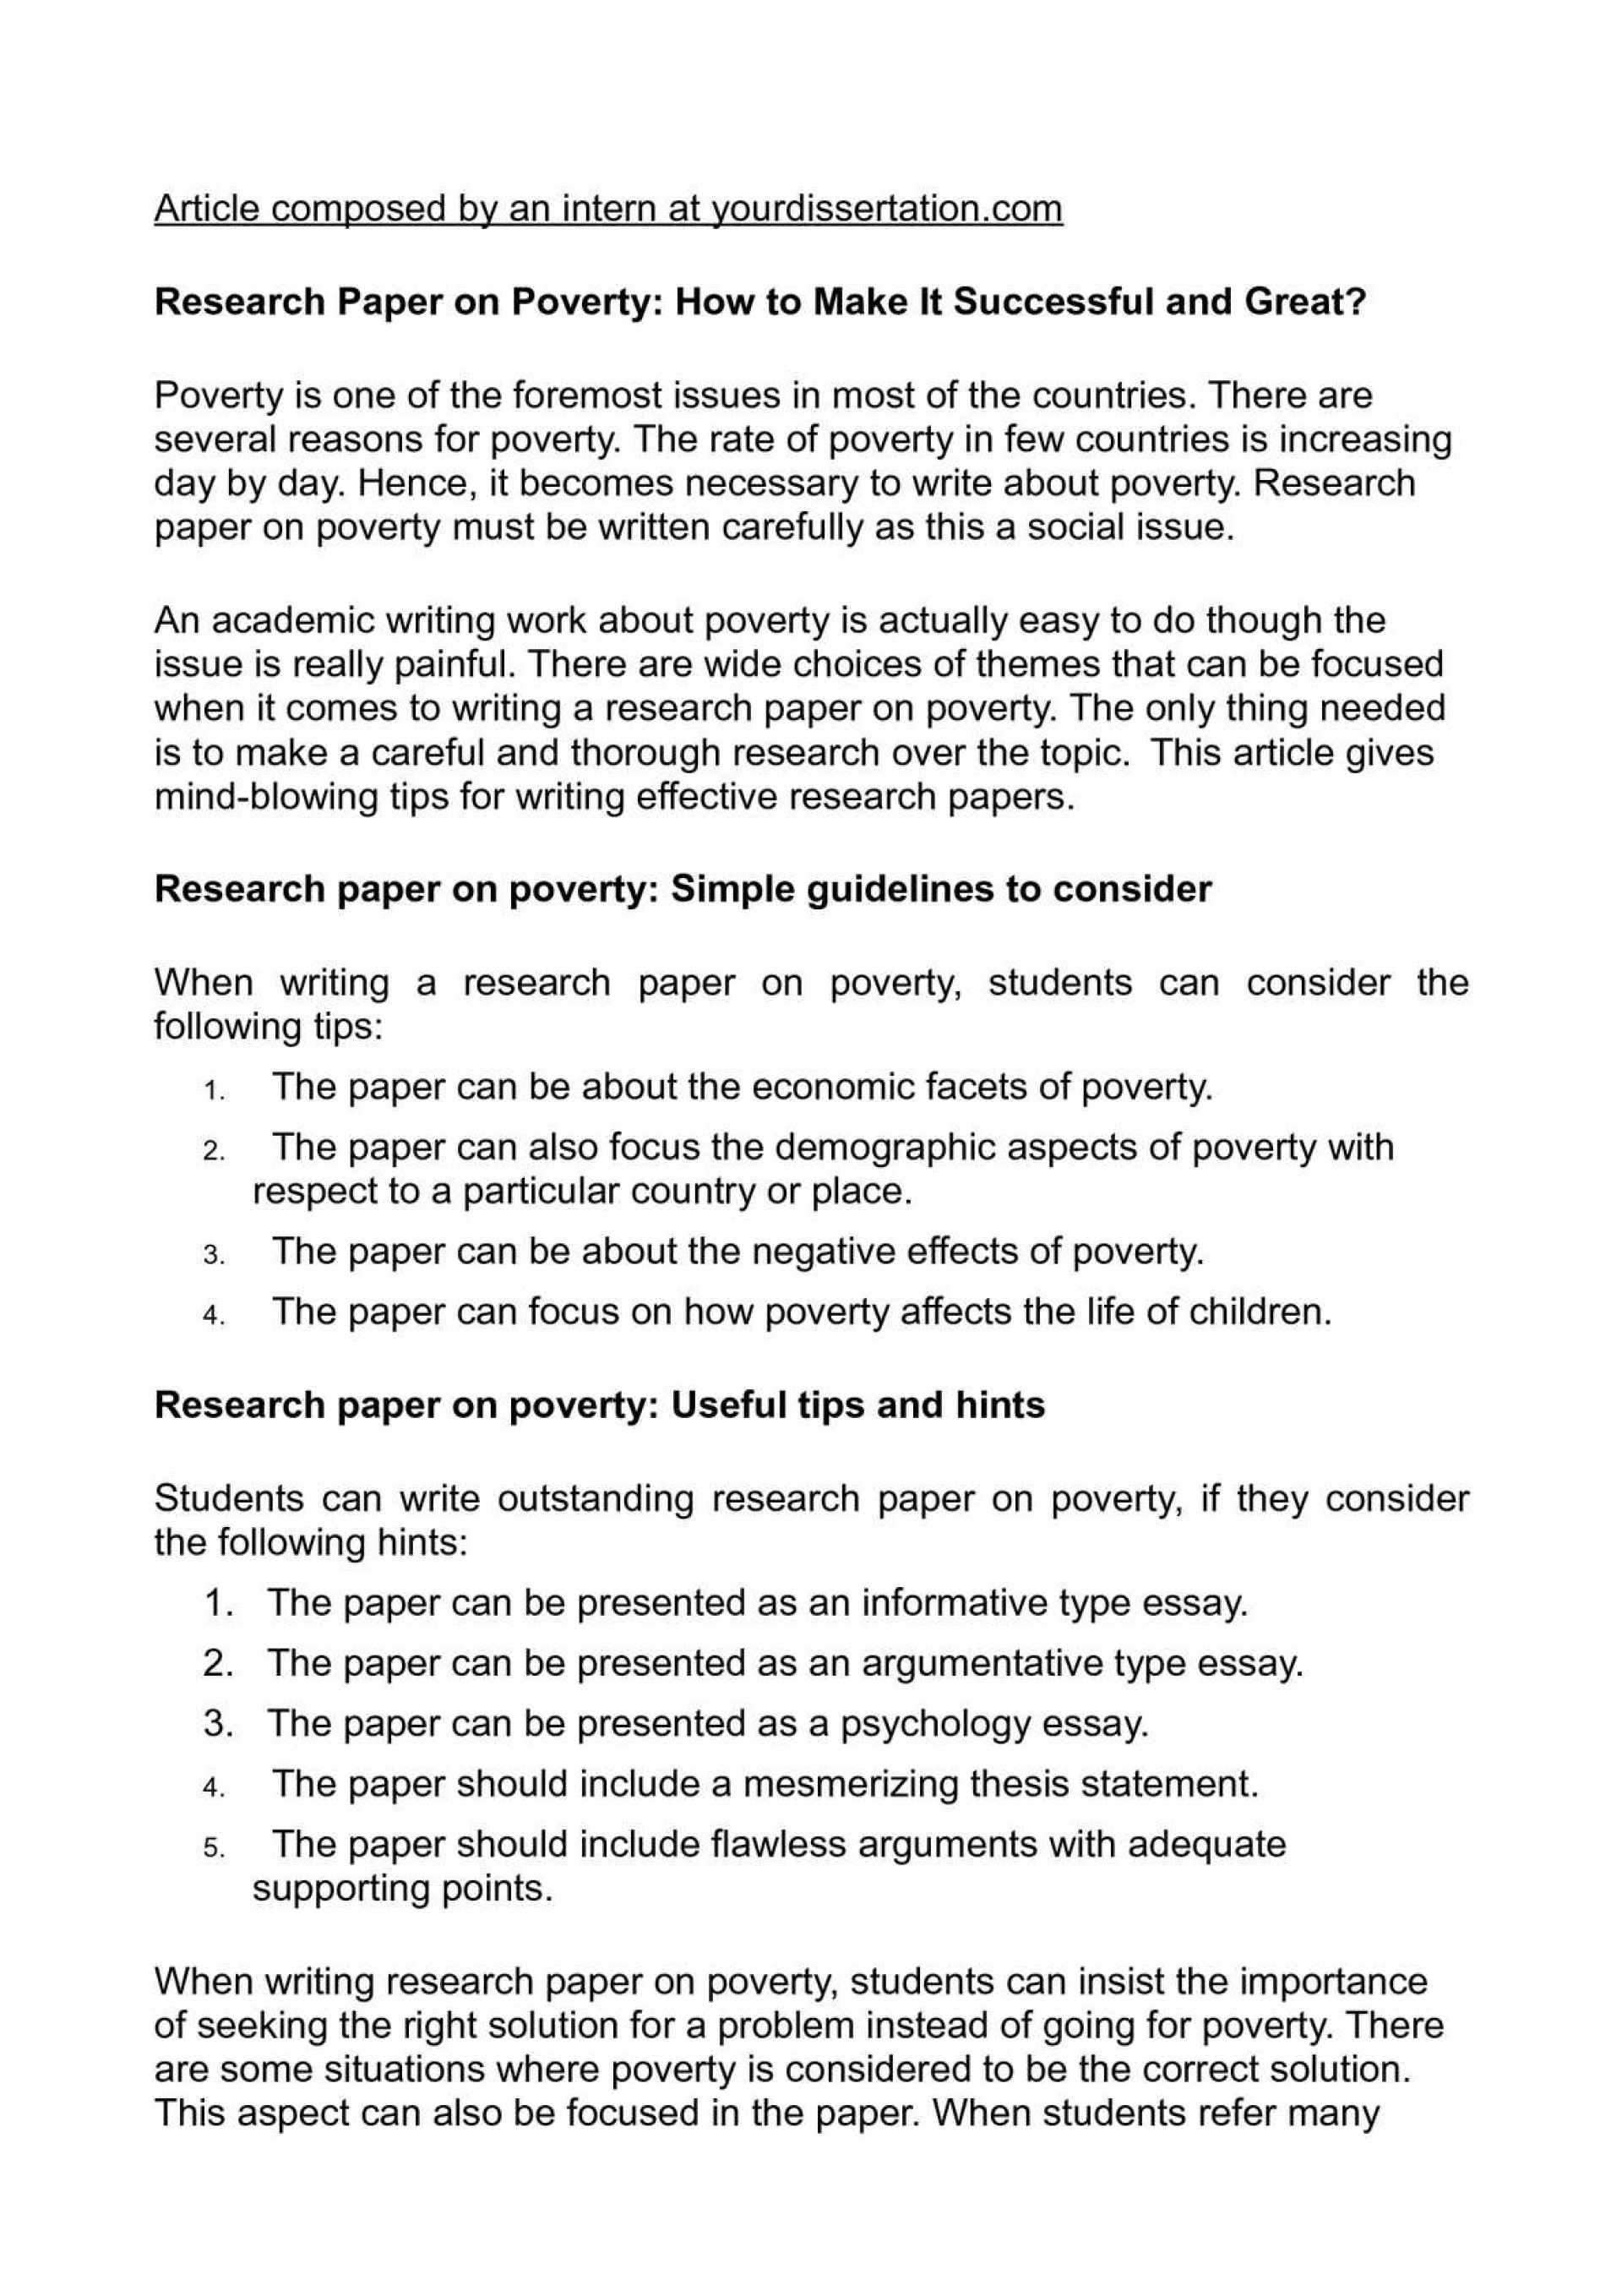 006 Can I Write Research Paper In One Day Fascinating A 6 Page 1920